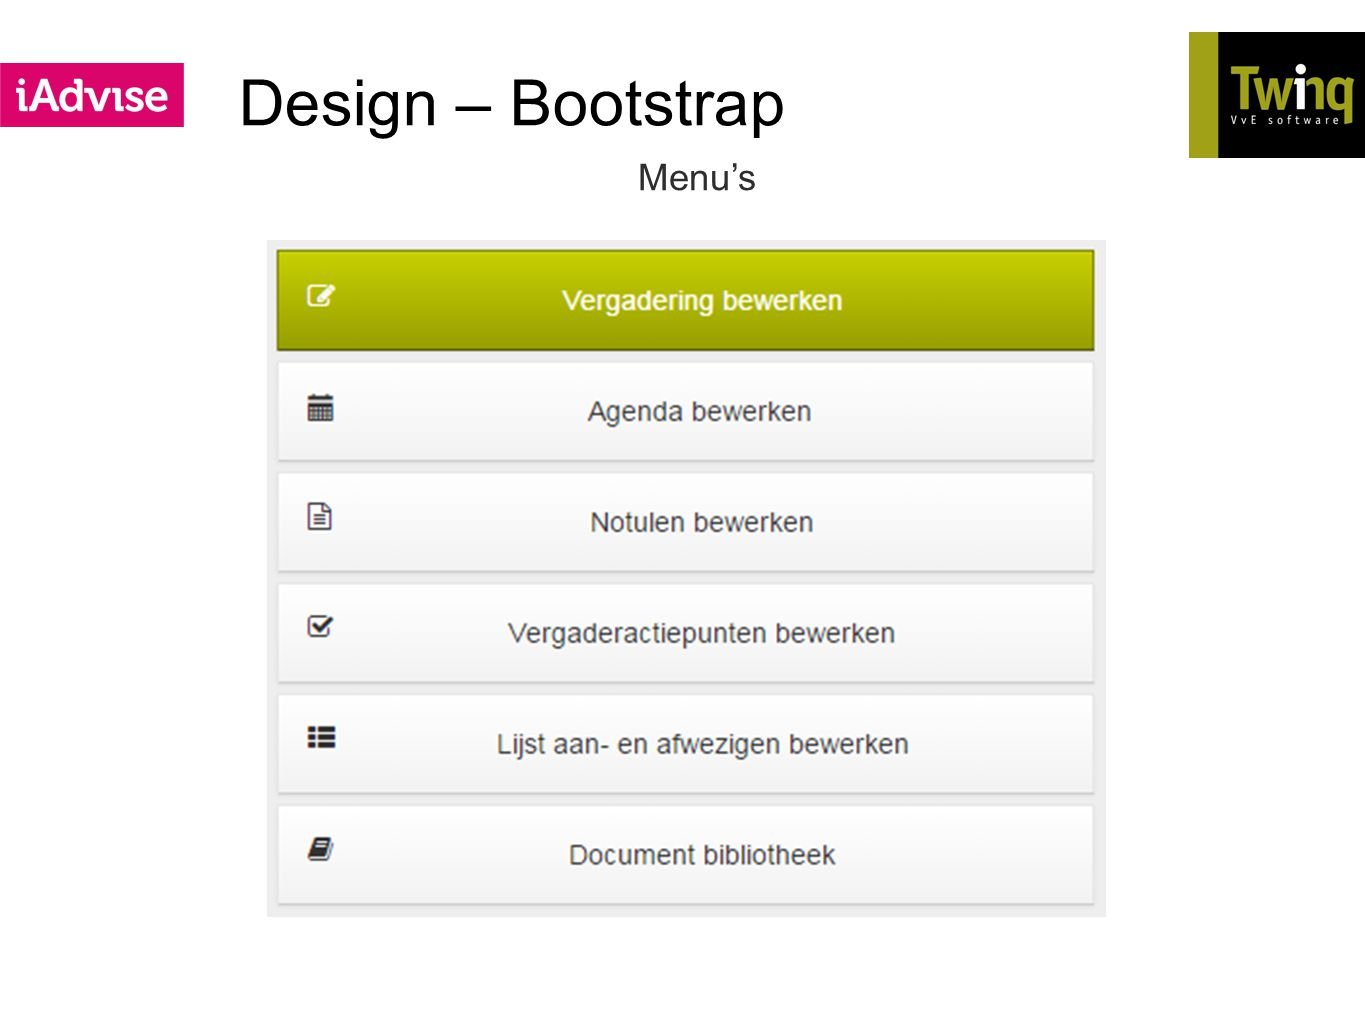 Design – Bootstrap Menu's